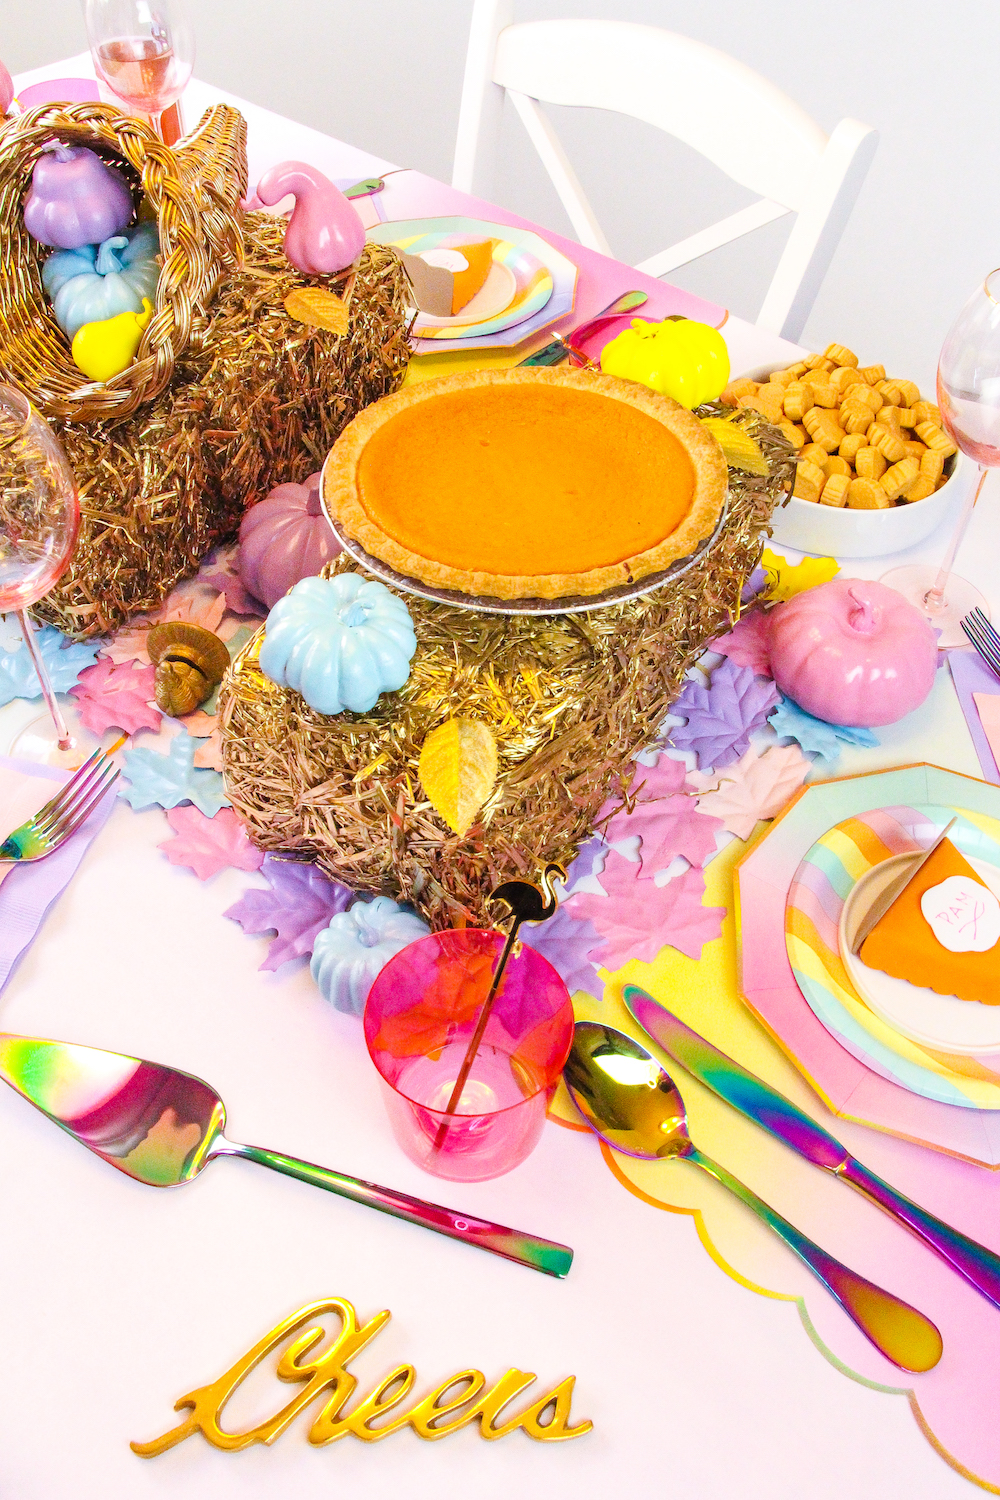 Our Gold Amp Pastel Rainbow Friendsgiving ⋆ Brite And Bubbly